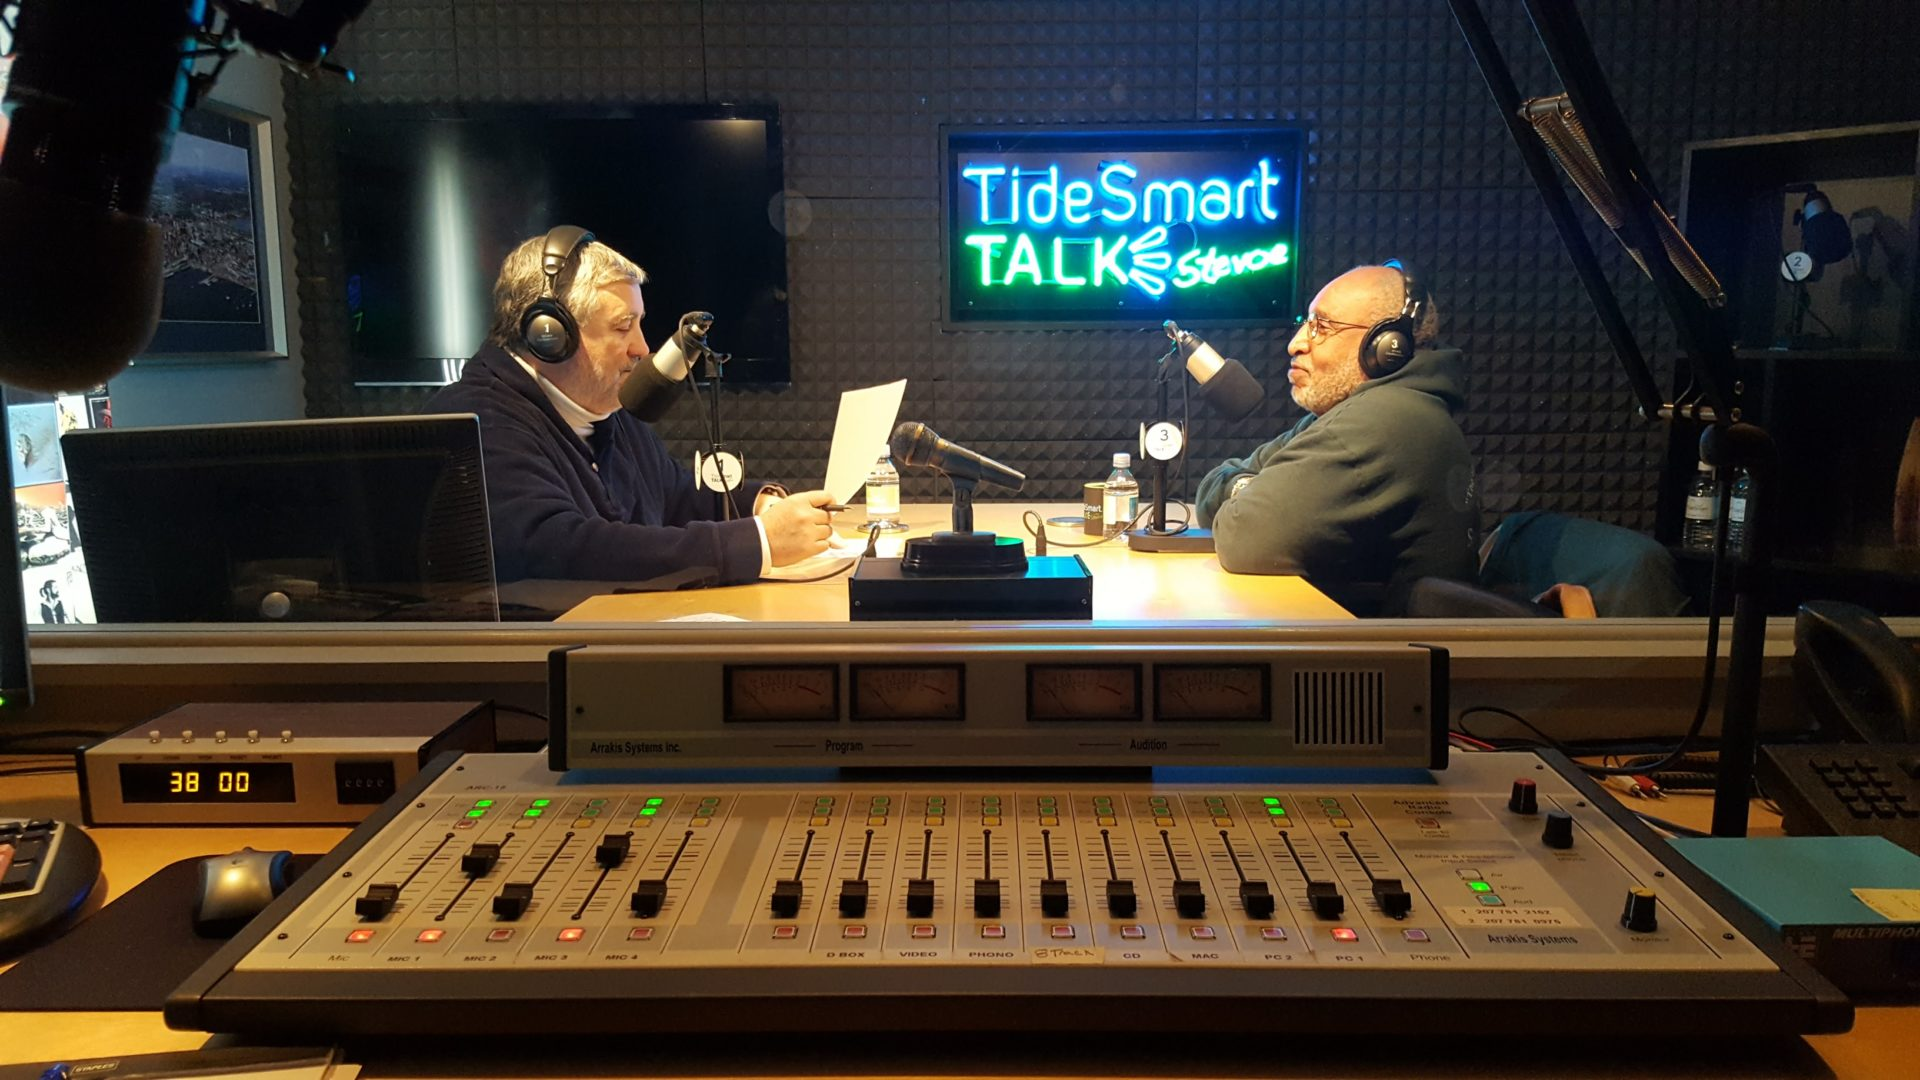 Host of TideSmart Talk with Stevoe, Steve Woods, welcomed Tim Wilson, Seeds of Peace Program Director (at right).